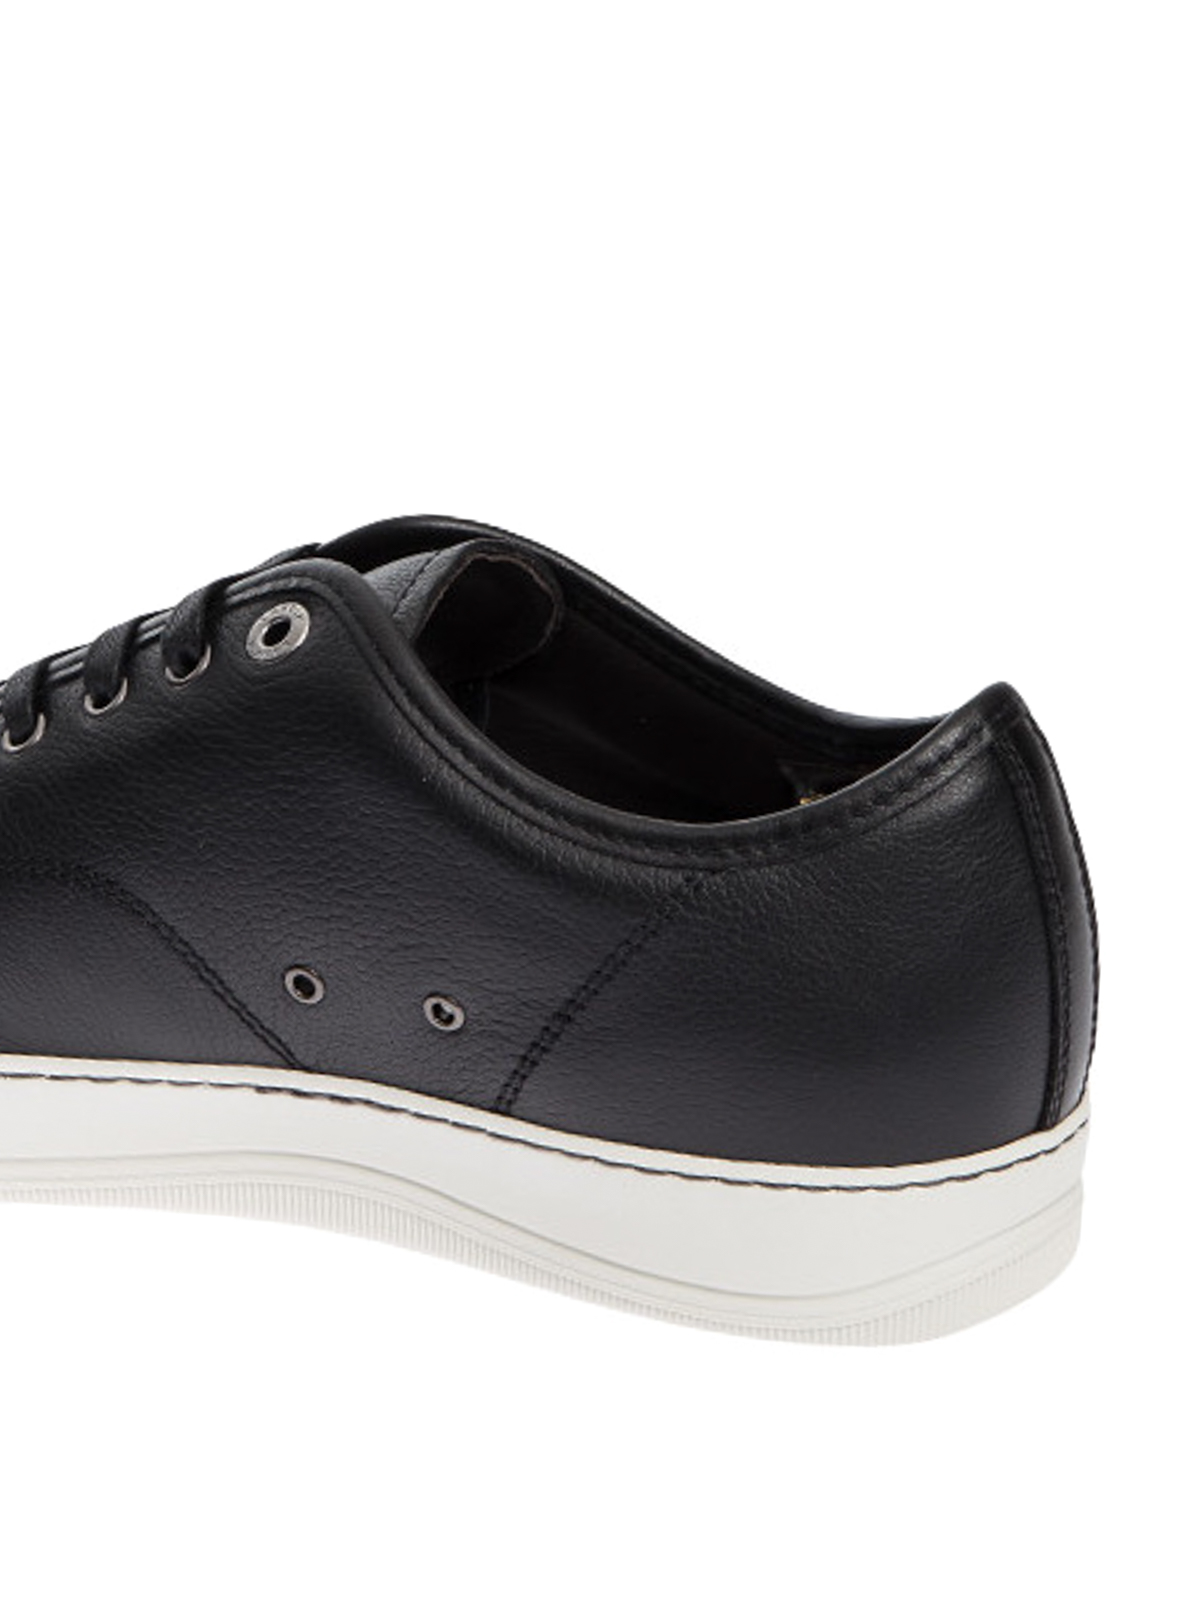 Lanvin - DBB1 low top leather sneakers